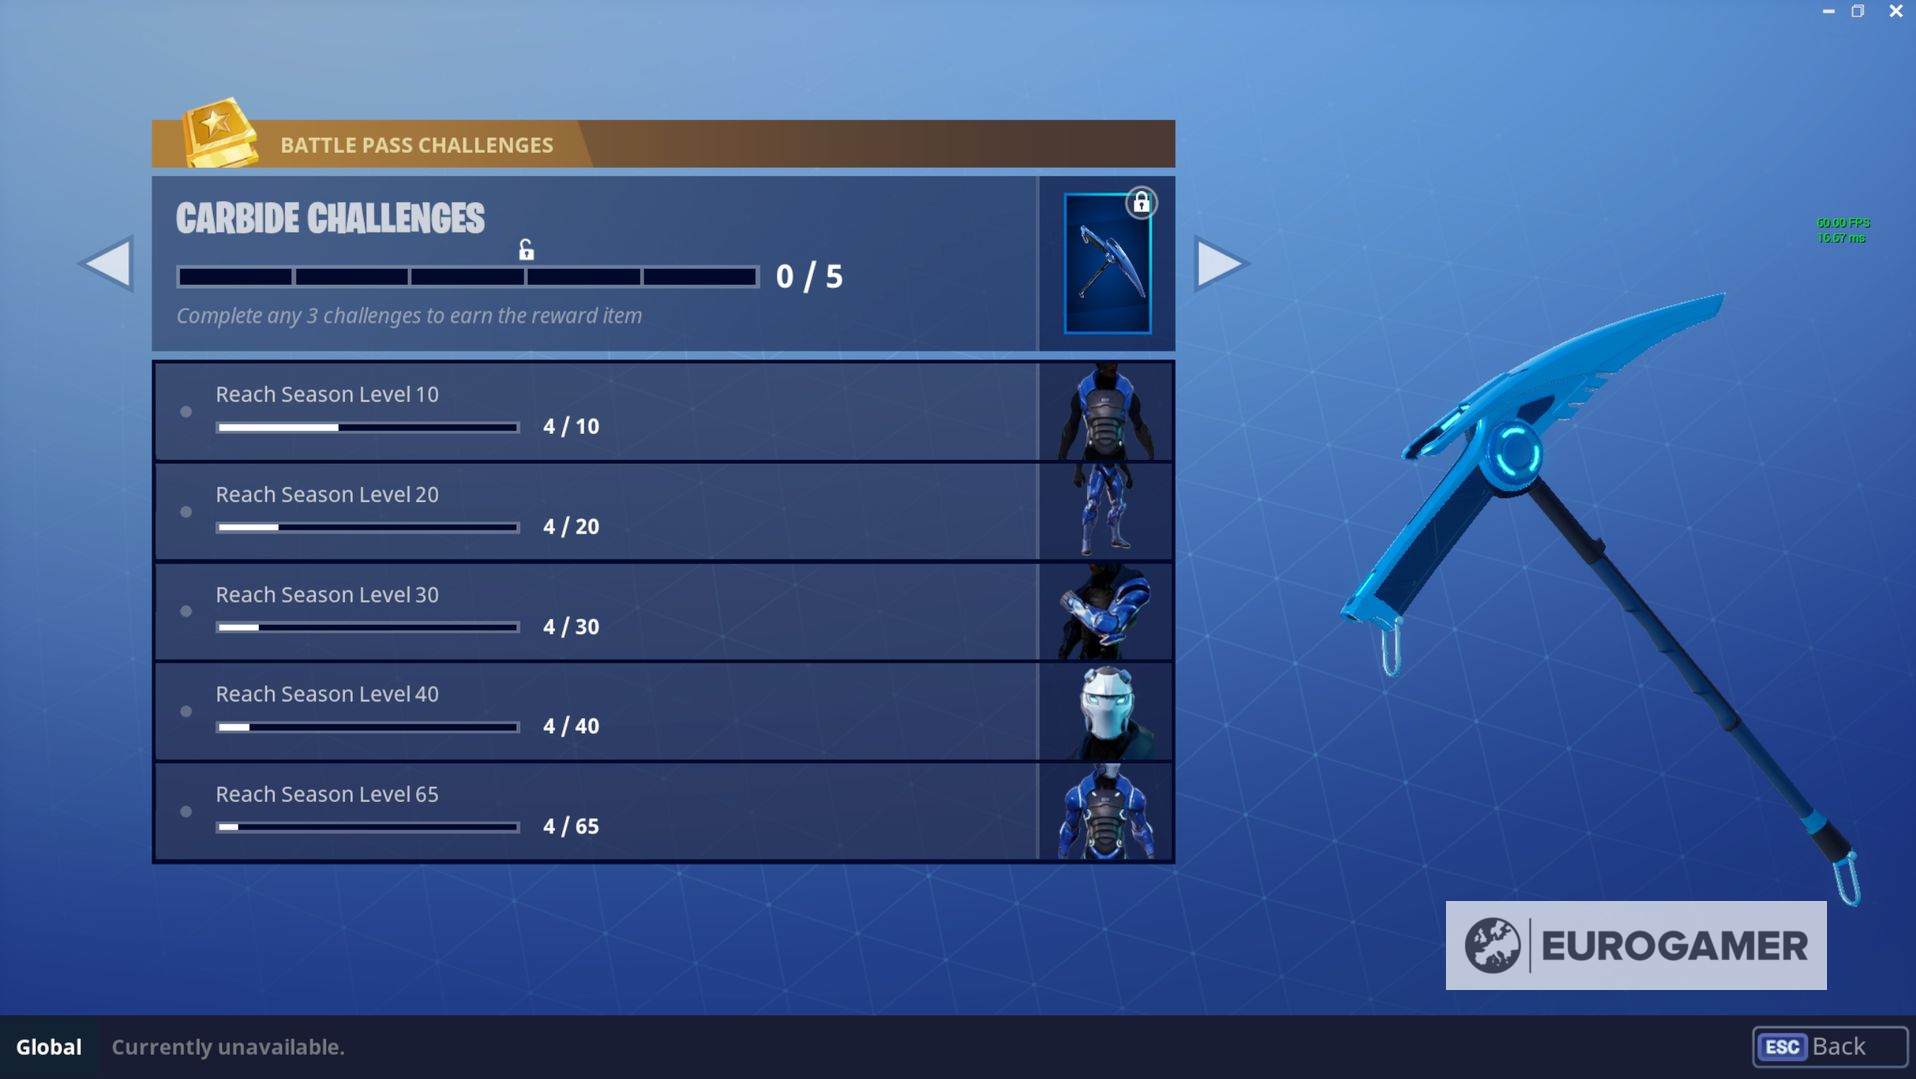 challenges_carbide